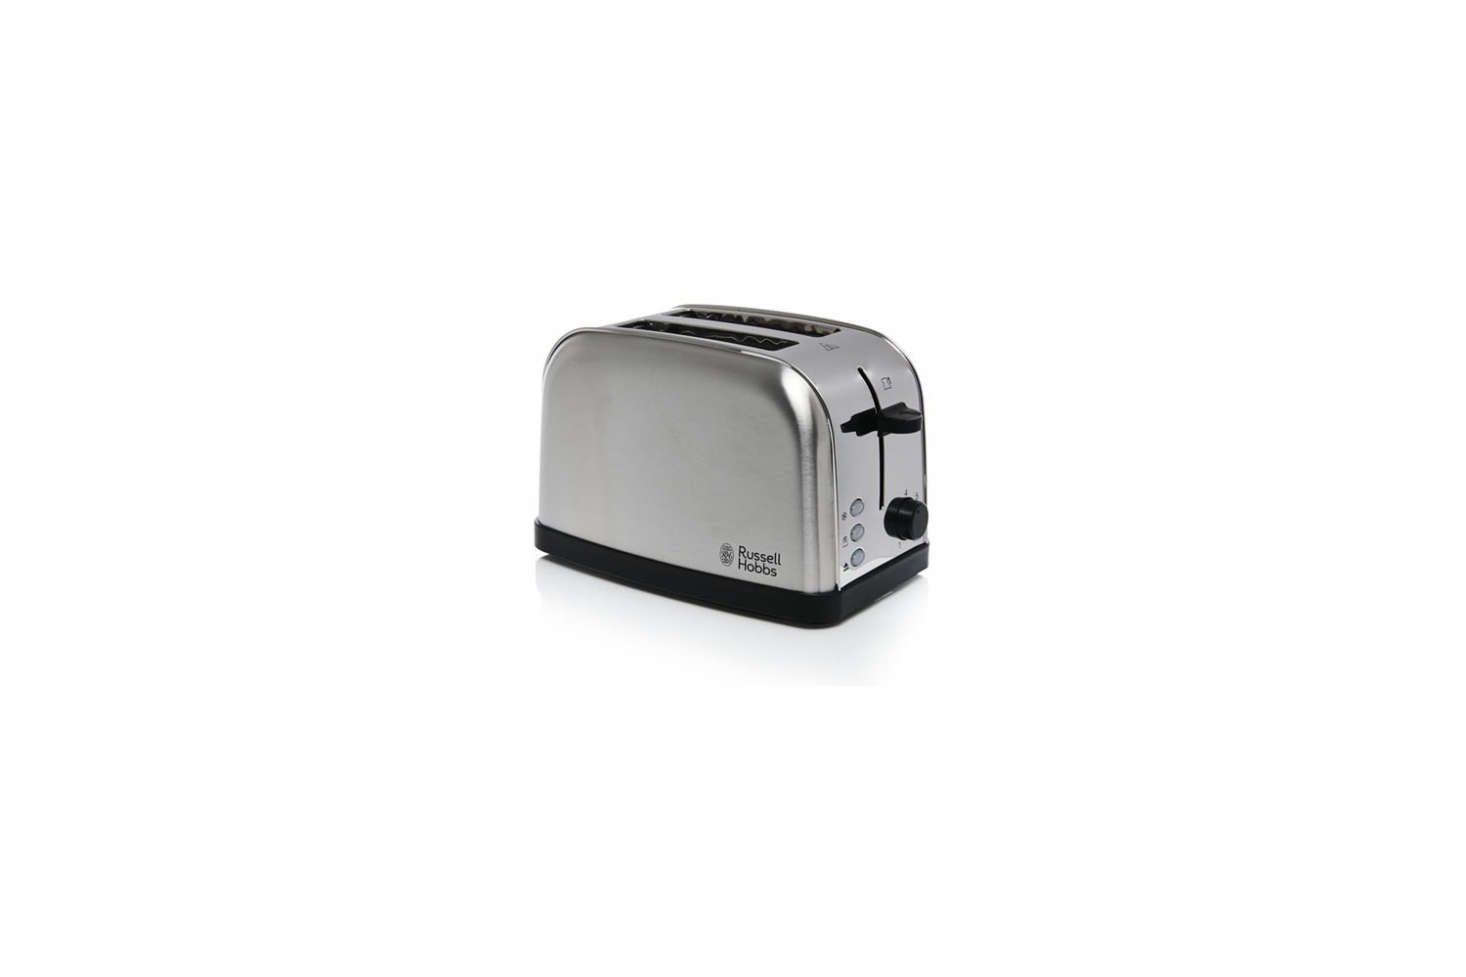 The simple Russell Hobbs